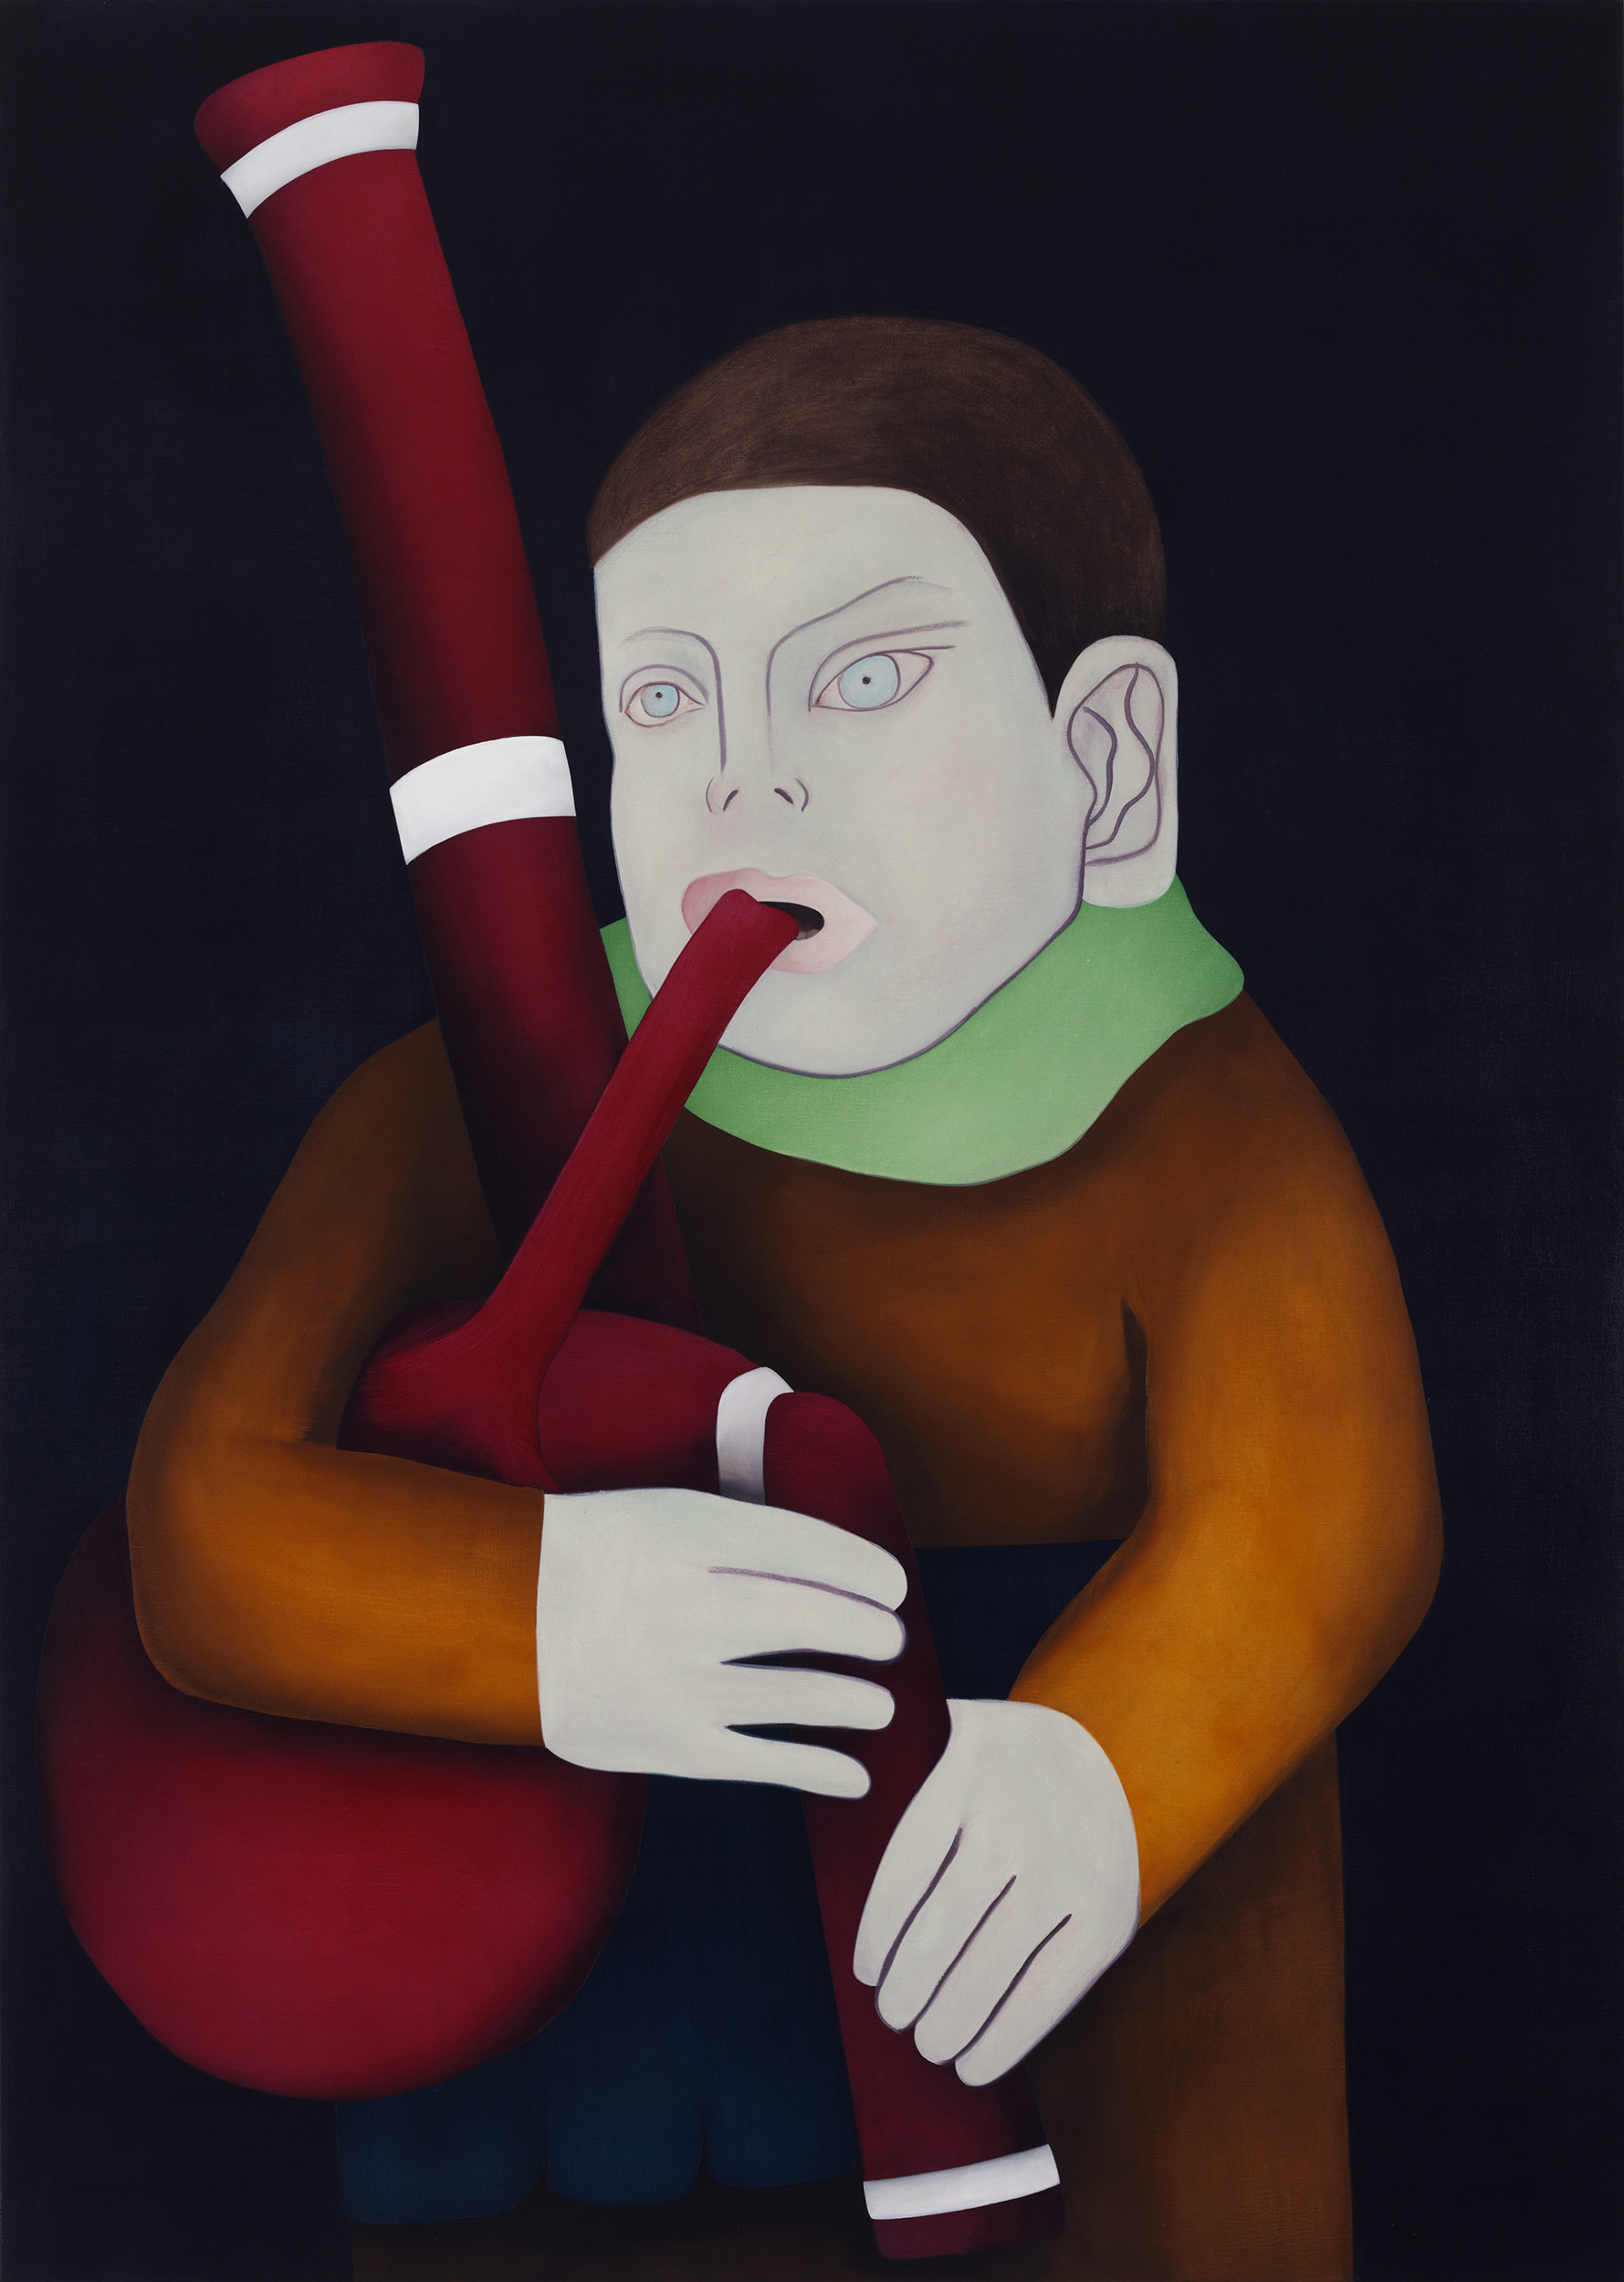 Bagpipes, painting by Wouter van Riessen